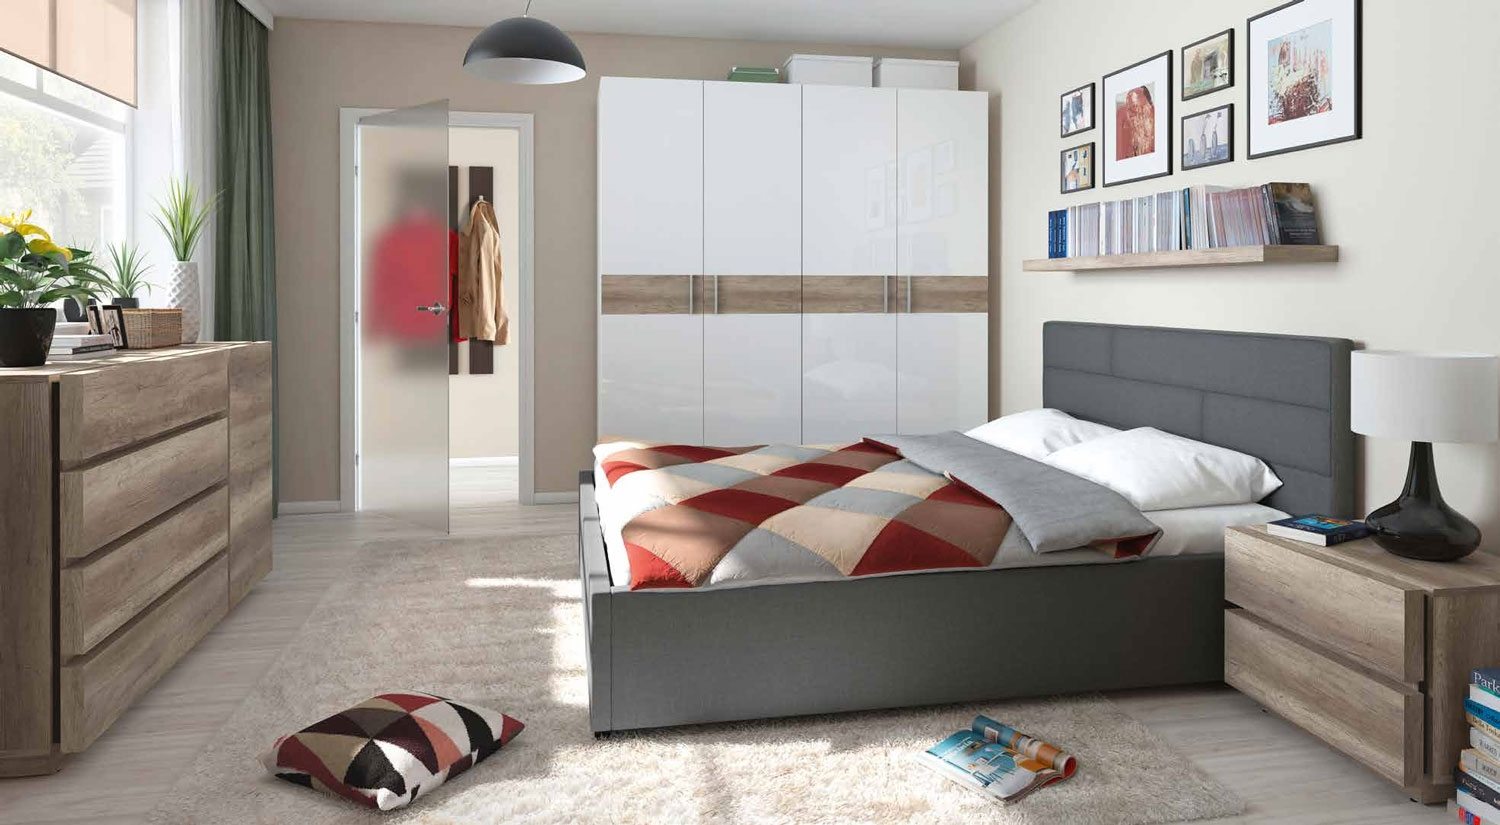 DORMITORIO NORDICO-3 NEW LINE - DORMITORIO NORDICO-3 NEW LINE